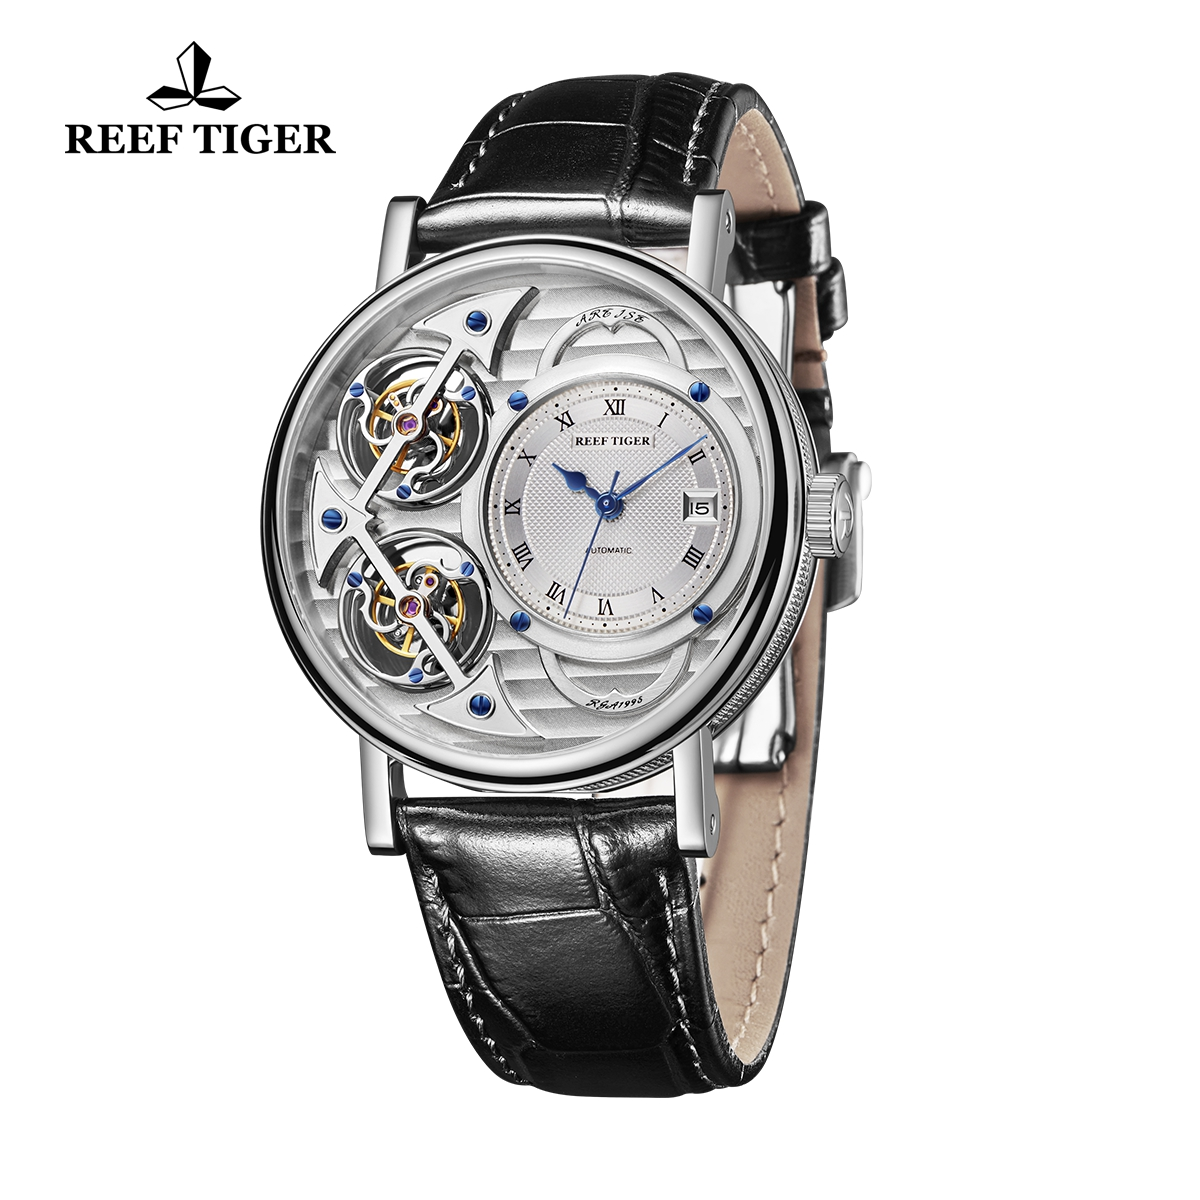 Reef Tiger Artist Magician Fashion Men\'s Steel Watches Leather Strap Automatic Watch With Date RGA1995-YSBS